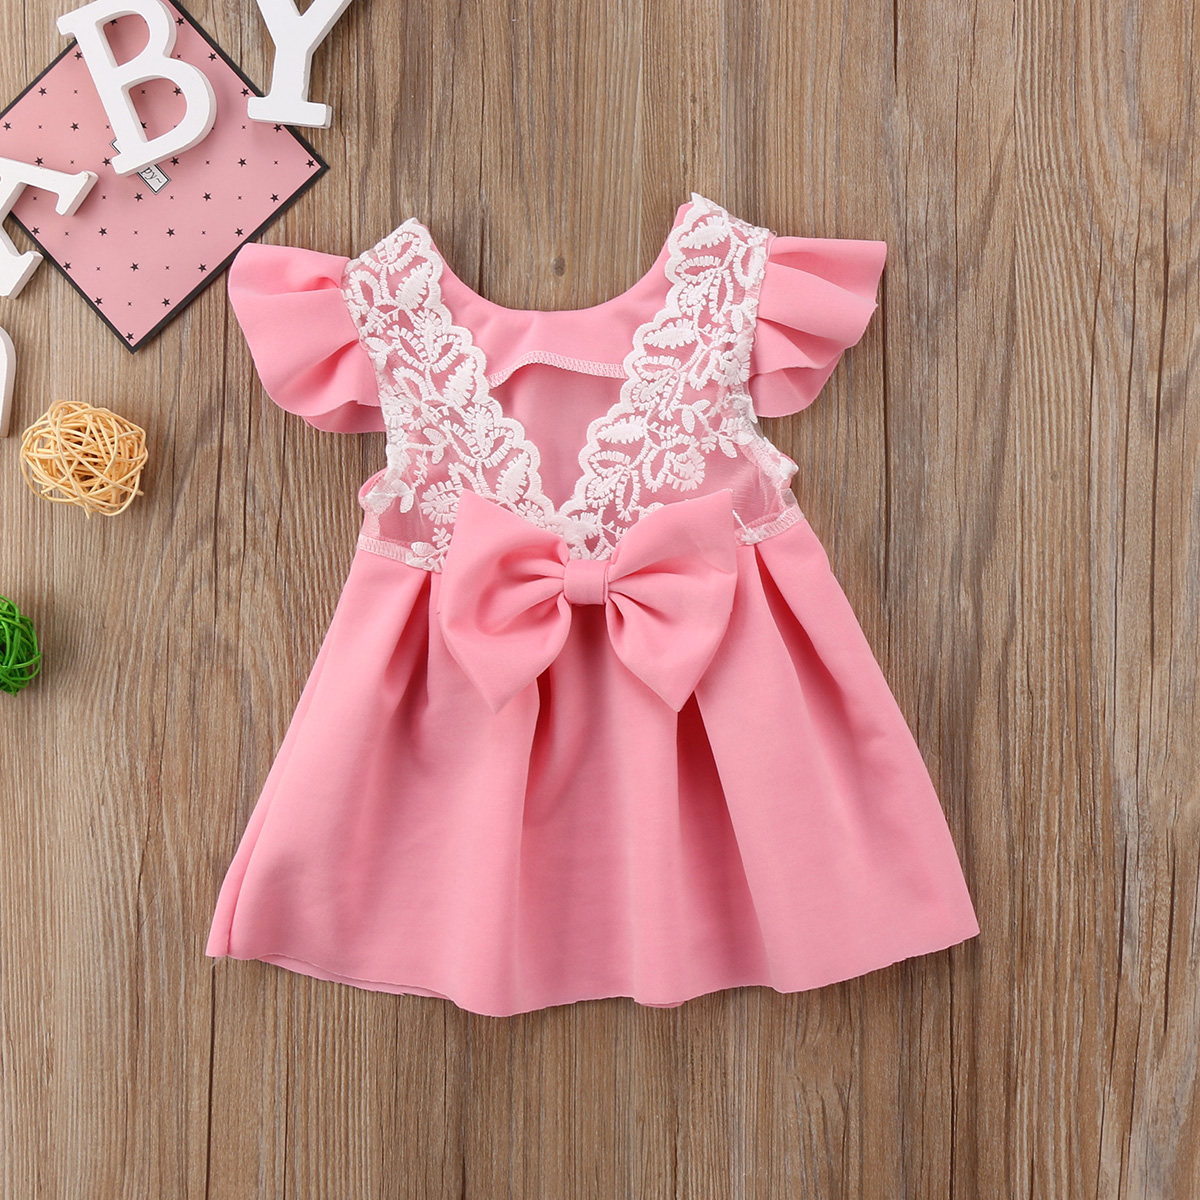 Able New 2019 Baby Girls Summer Butterfly Mesh Vest Dresses Wholesale Free Shipping Baby Children Sweet Flower Dress 5 Pcs/lot